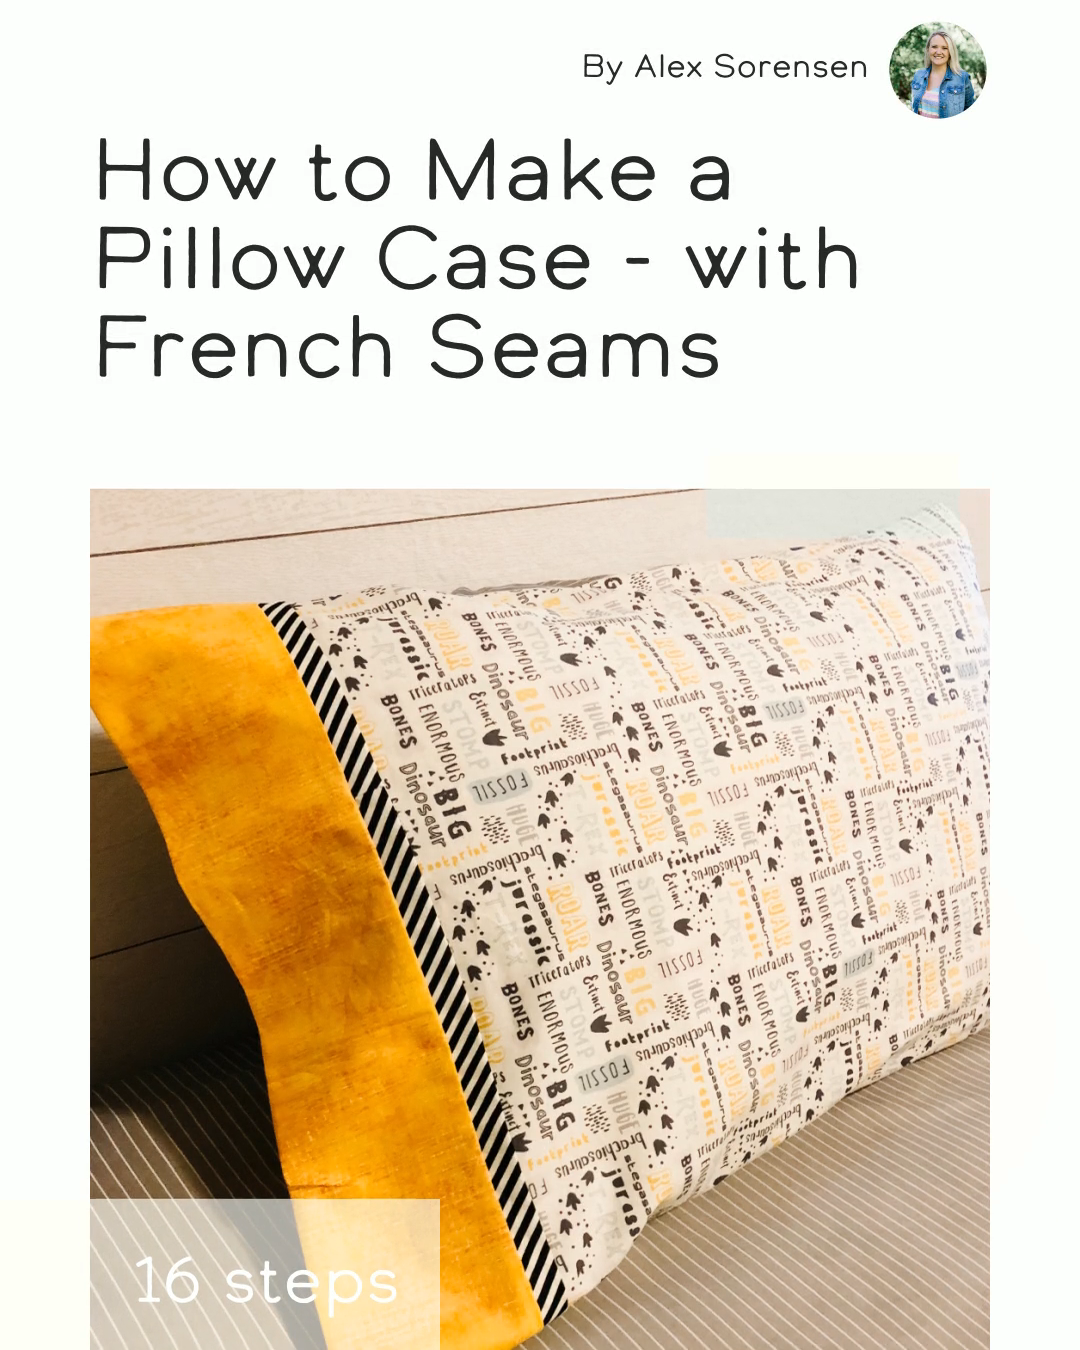 How to Make a Pillow Case - with French Seams in 16 steps using Main Fabric, Trim Fabric, Cuff Fabric #jumpropeapp #jumprope